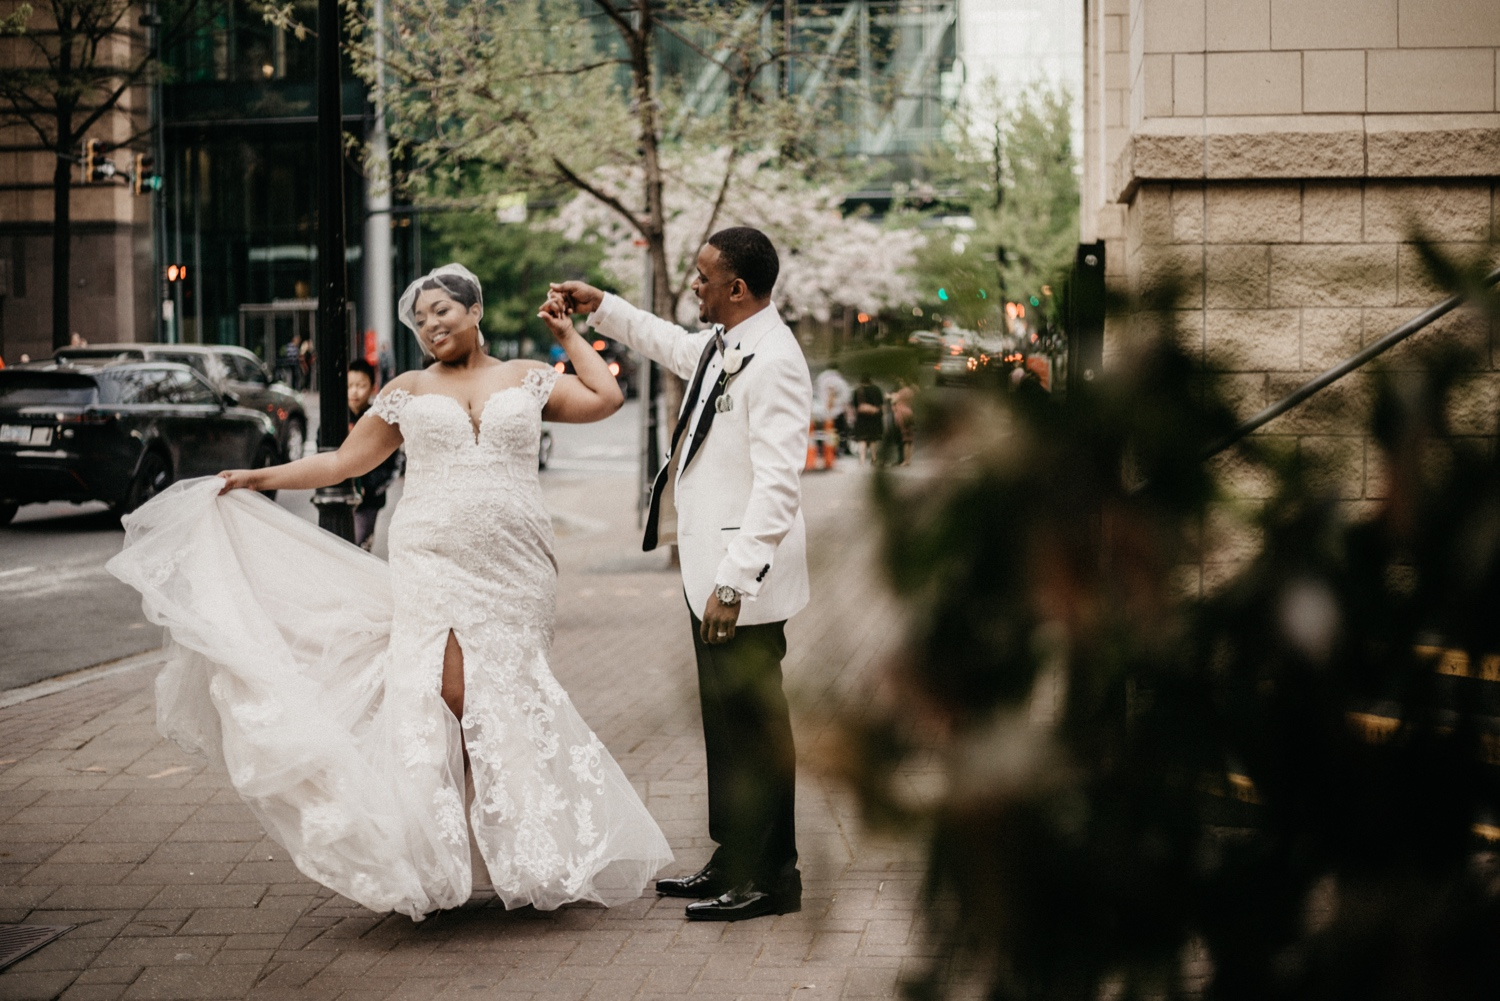 51_Ritz-carlton-wedding_charlotteNC_charlotteweddingphotographer.jpg